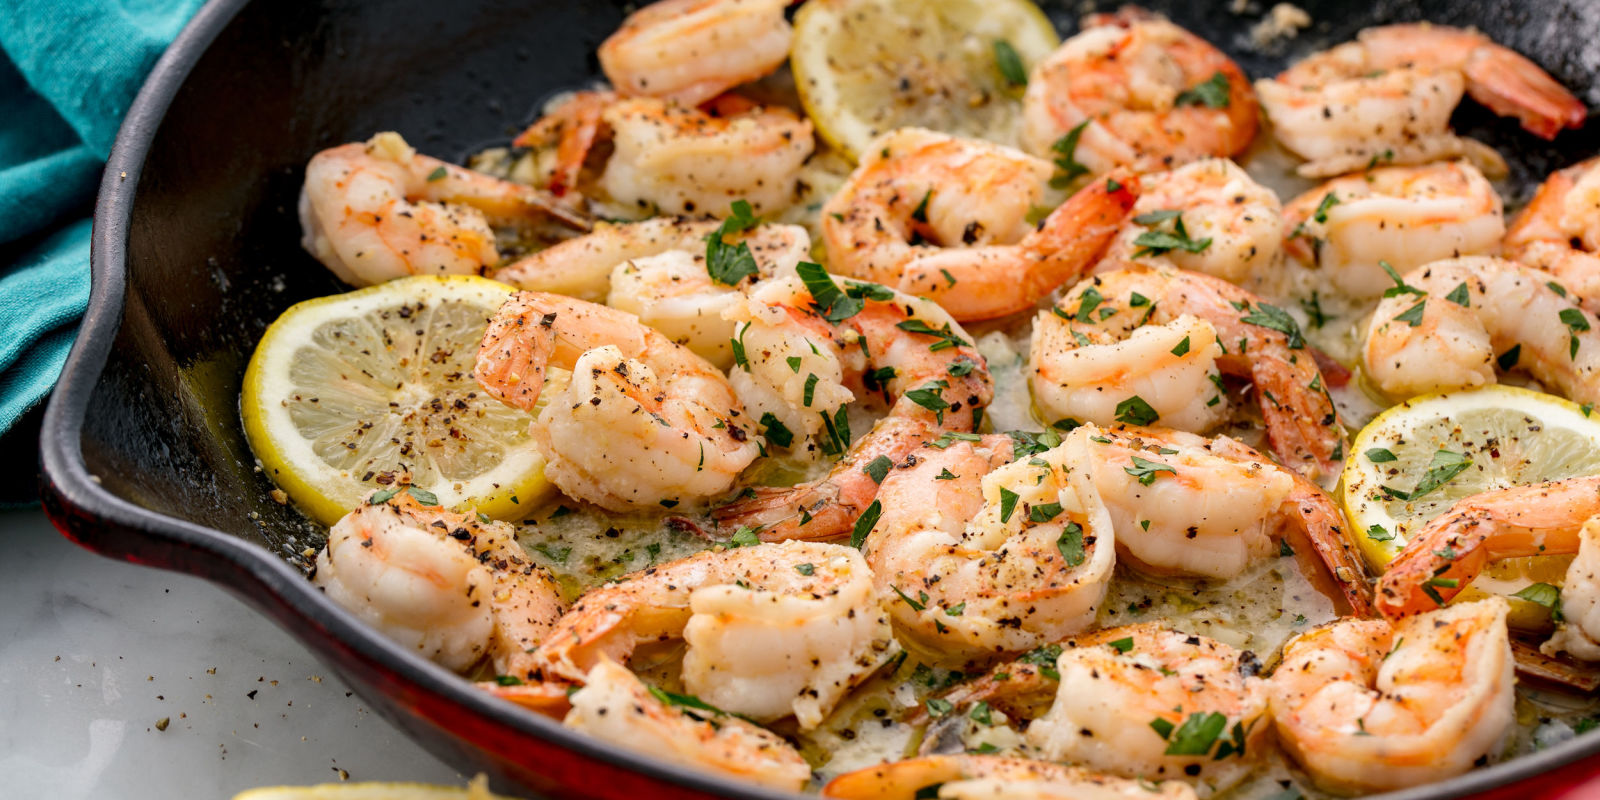 Best lemon garlic shrimp recipe how to make lemon garlic What to make with shrimp for dinner